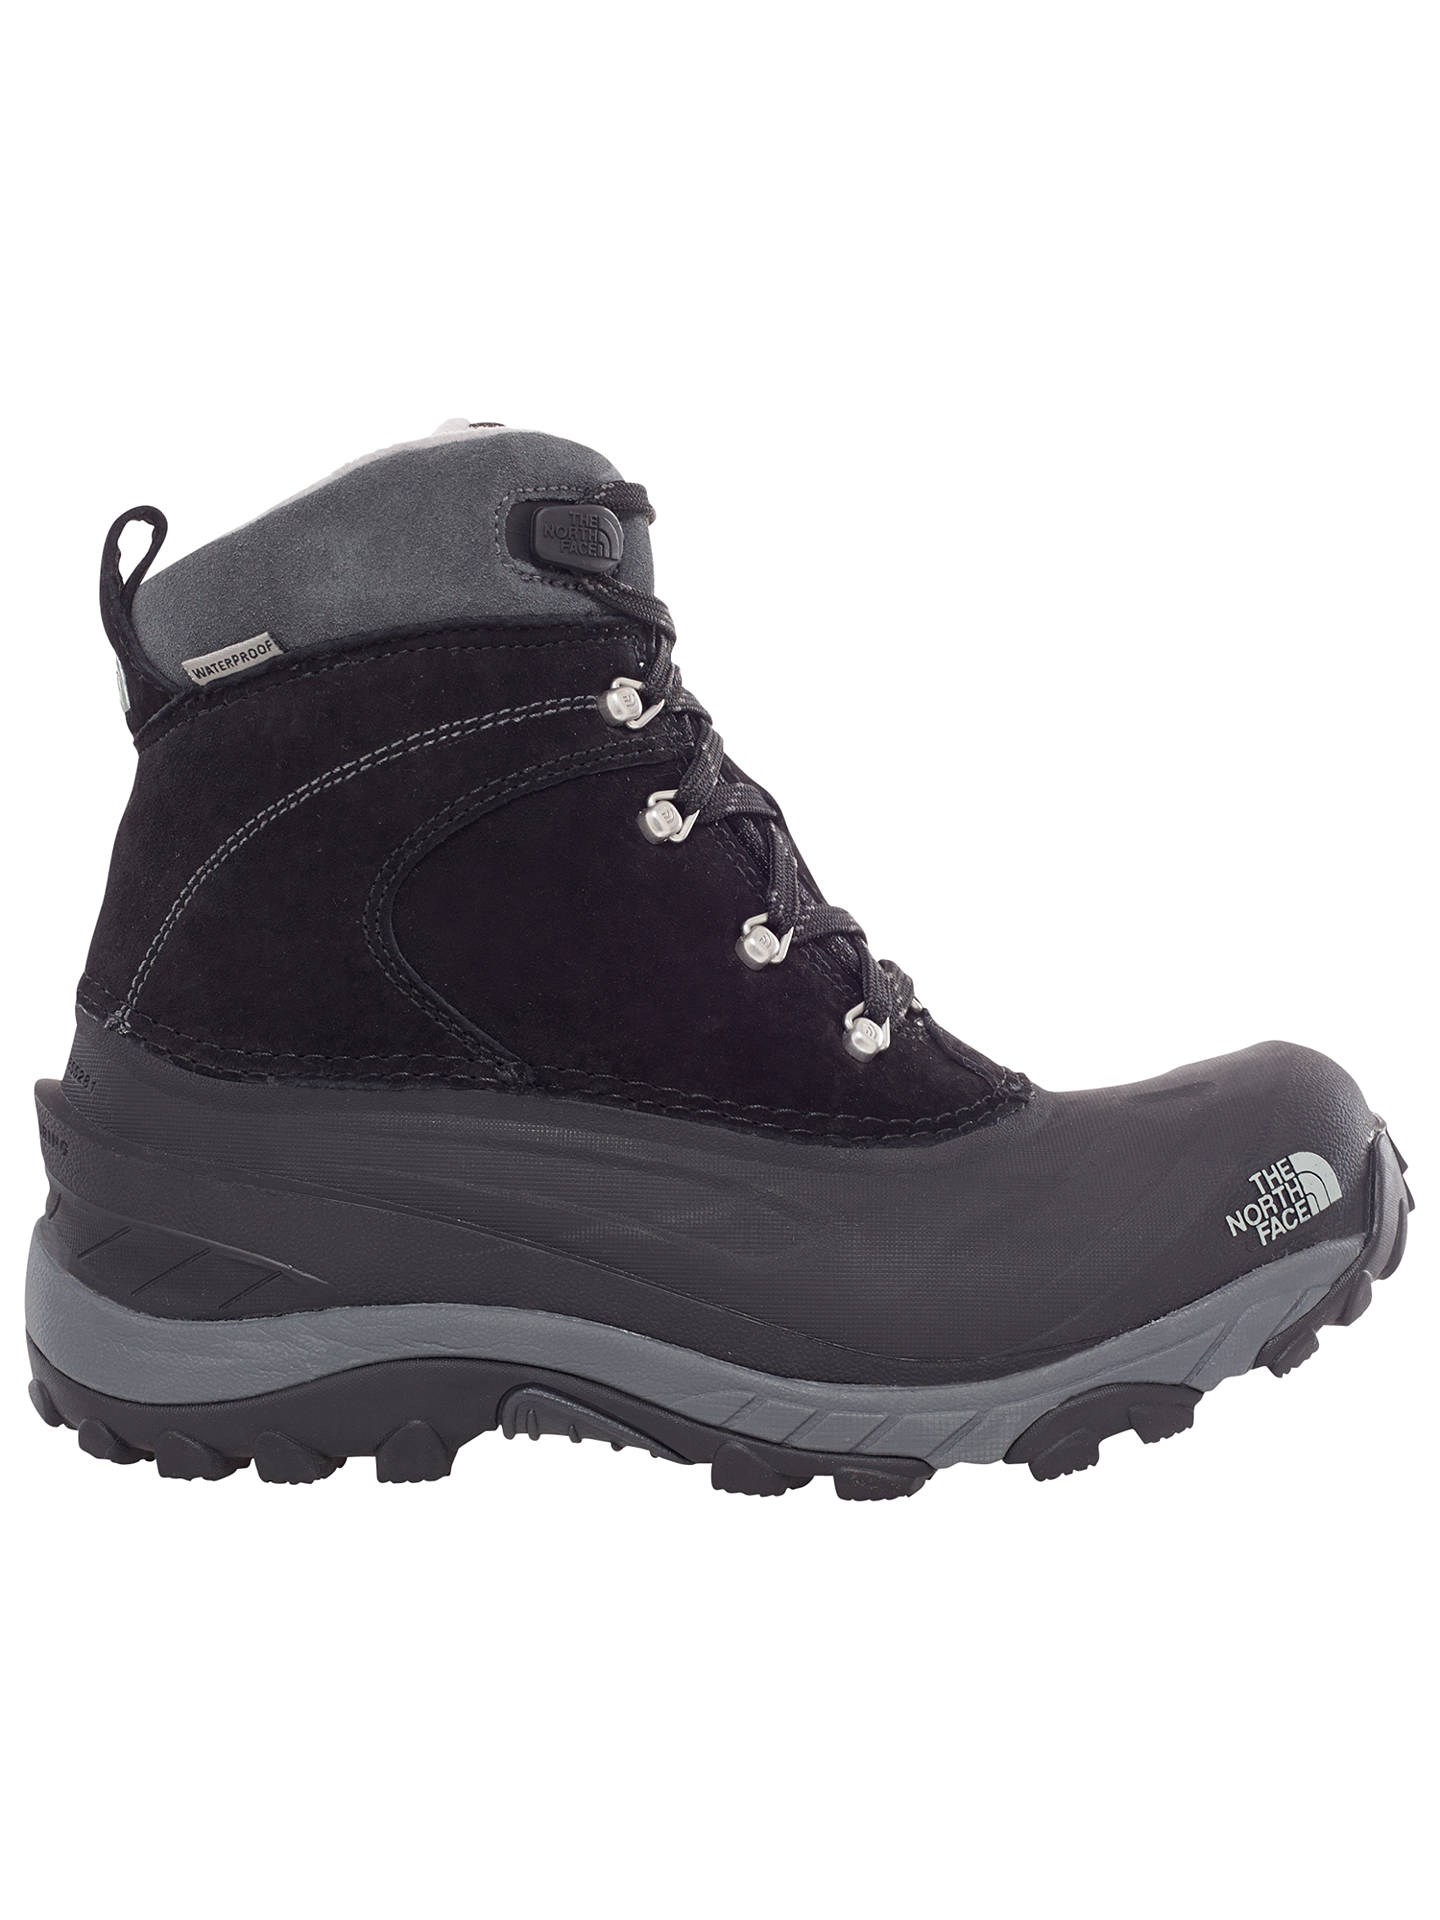 368fc2db1 The North Face Chilkat II Waterproof Men's Snow Boot, Black/Griffen ...